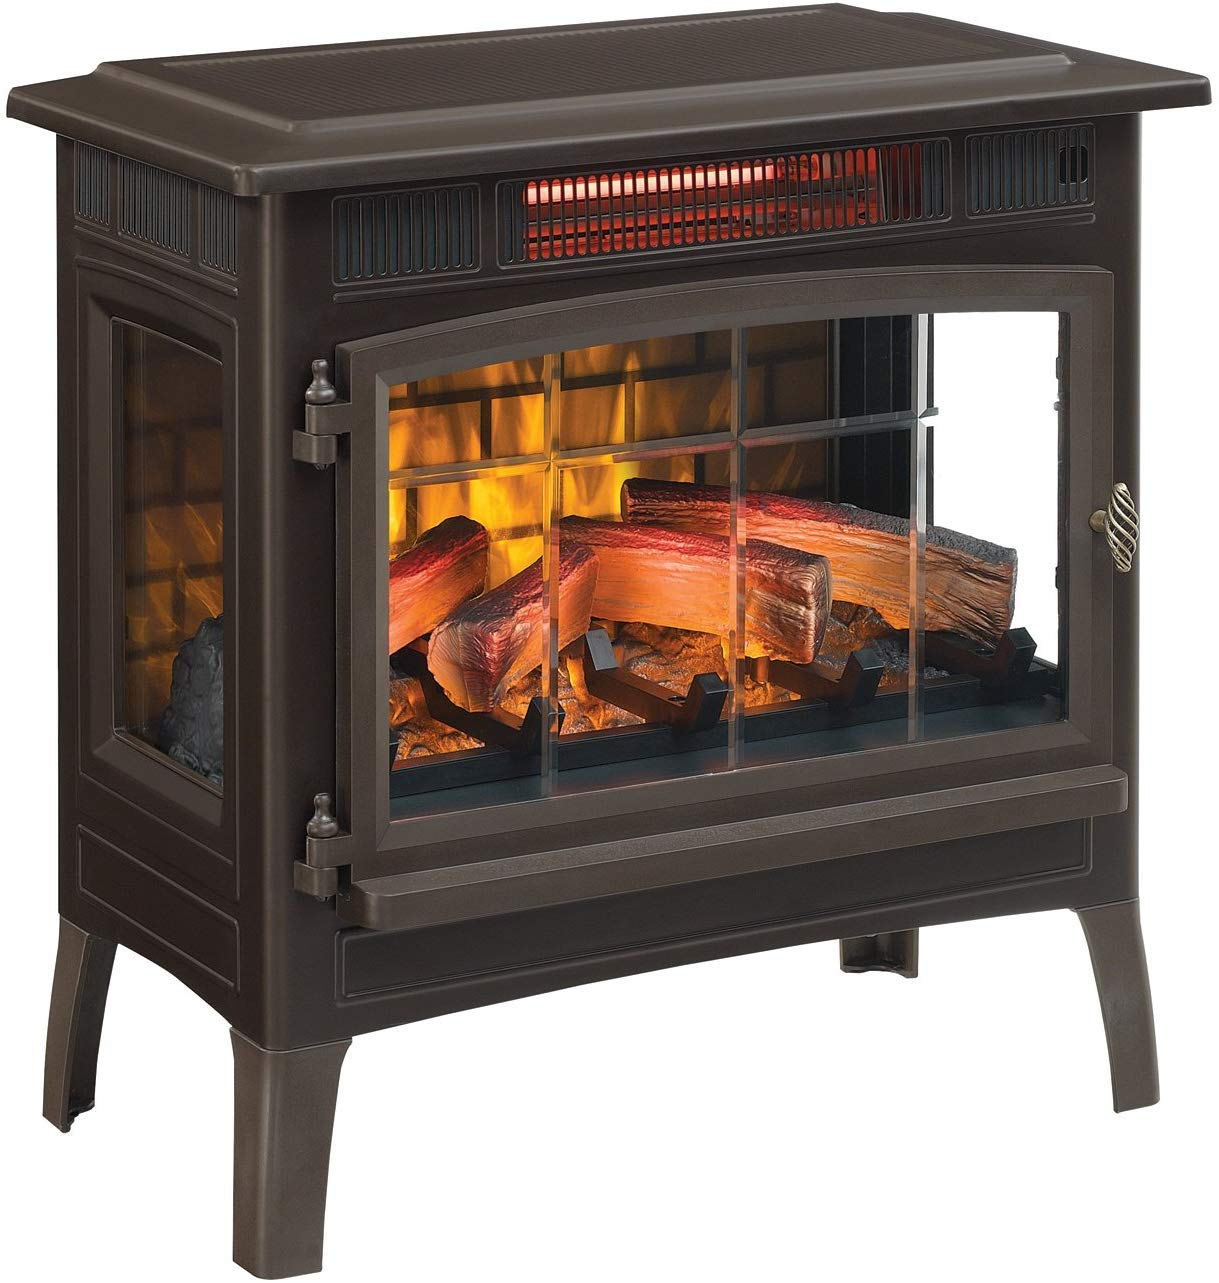 Duraflame 3D Infrared Electric Fireplace Stove with Remote Control - Portable Indoor Space Heater - DFI-5010 (Bronze) by Duraflame